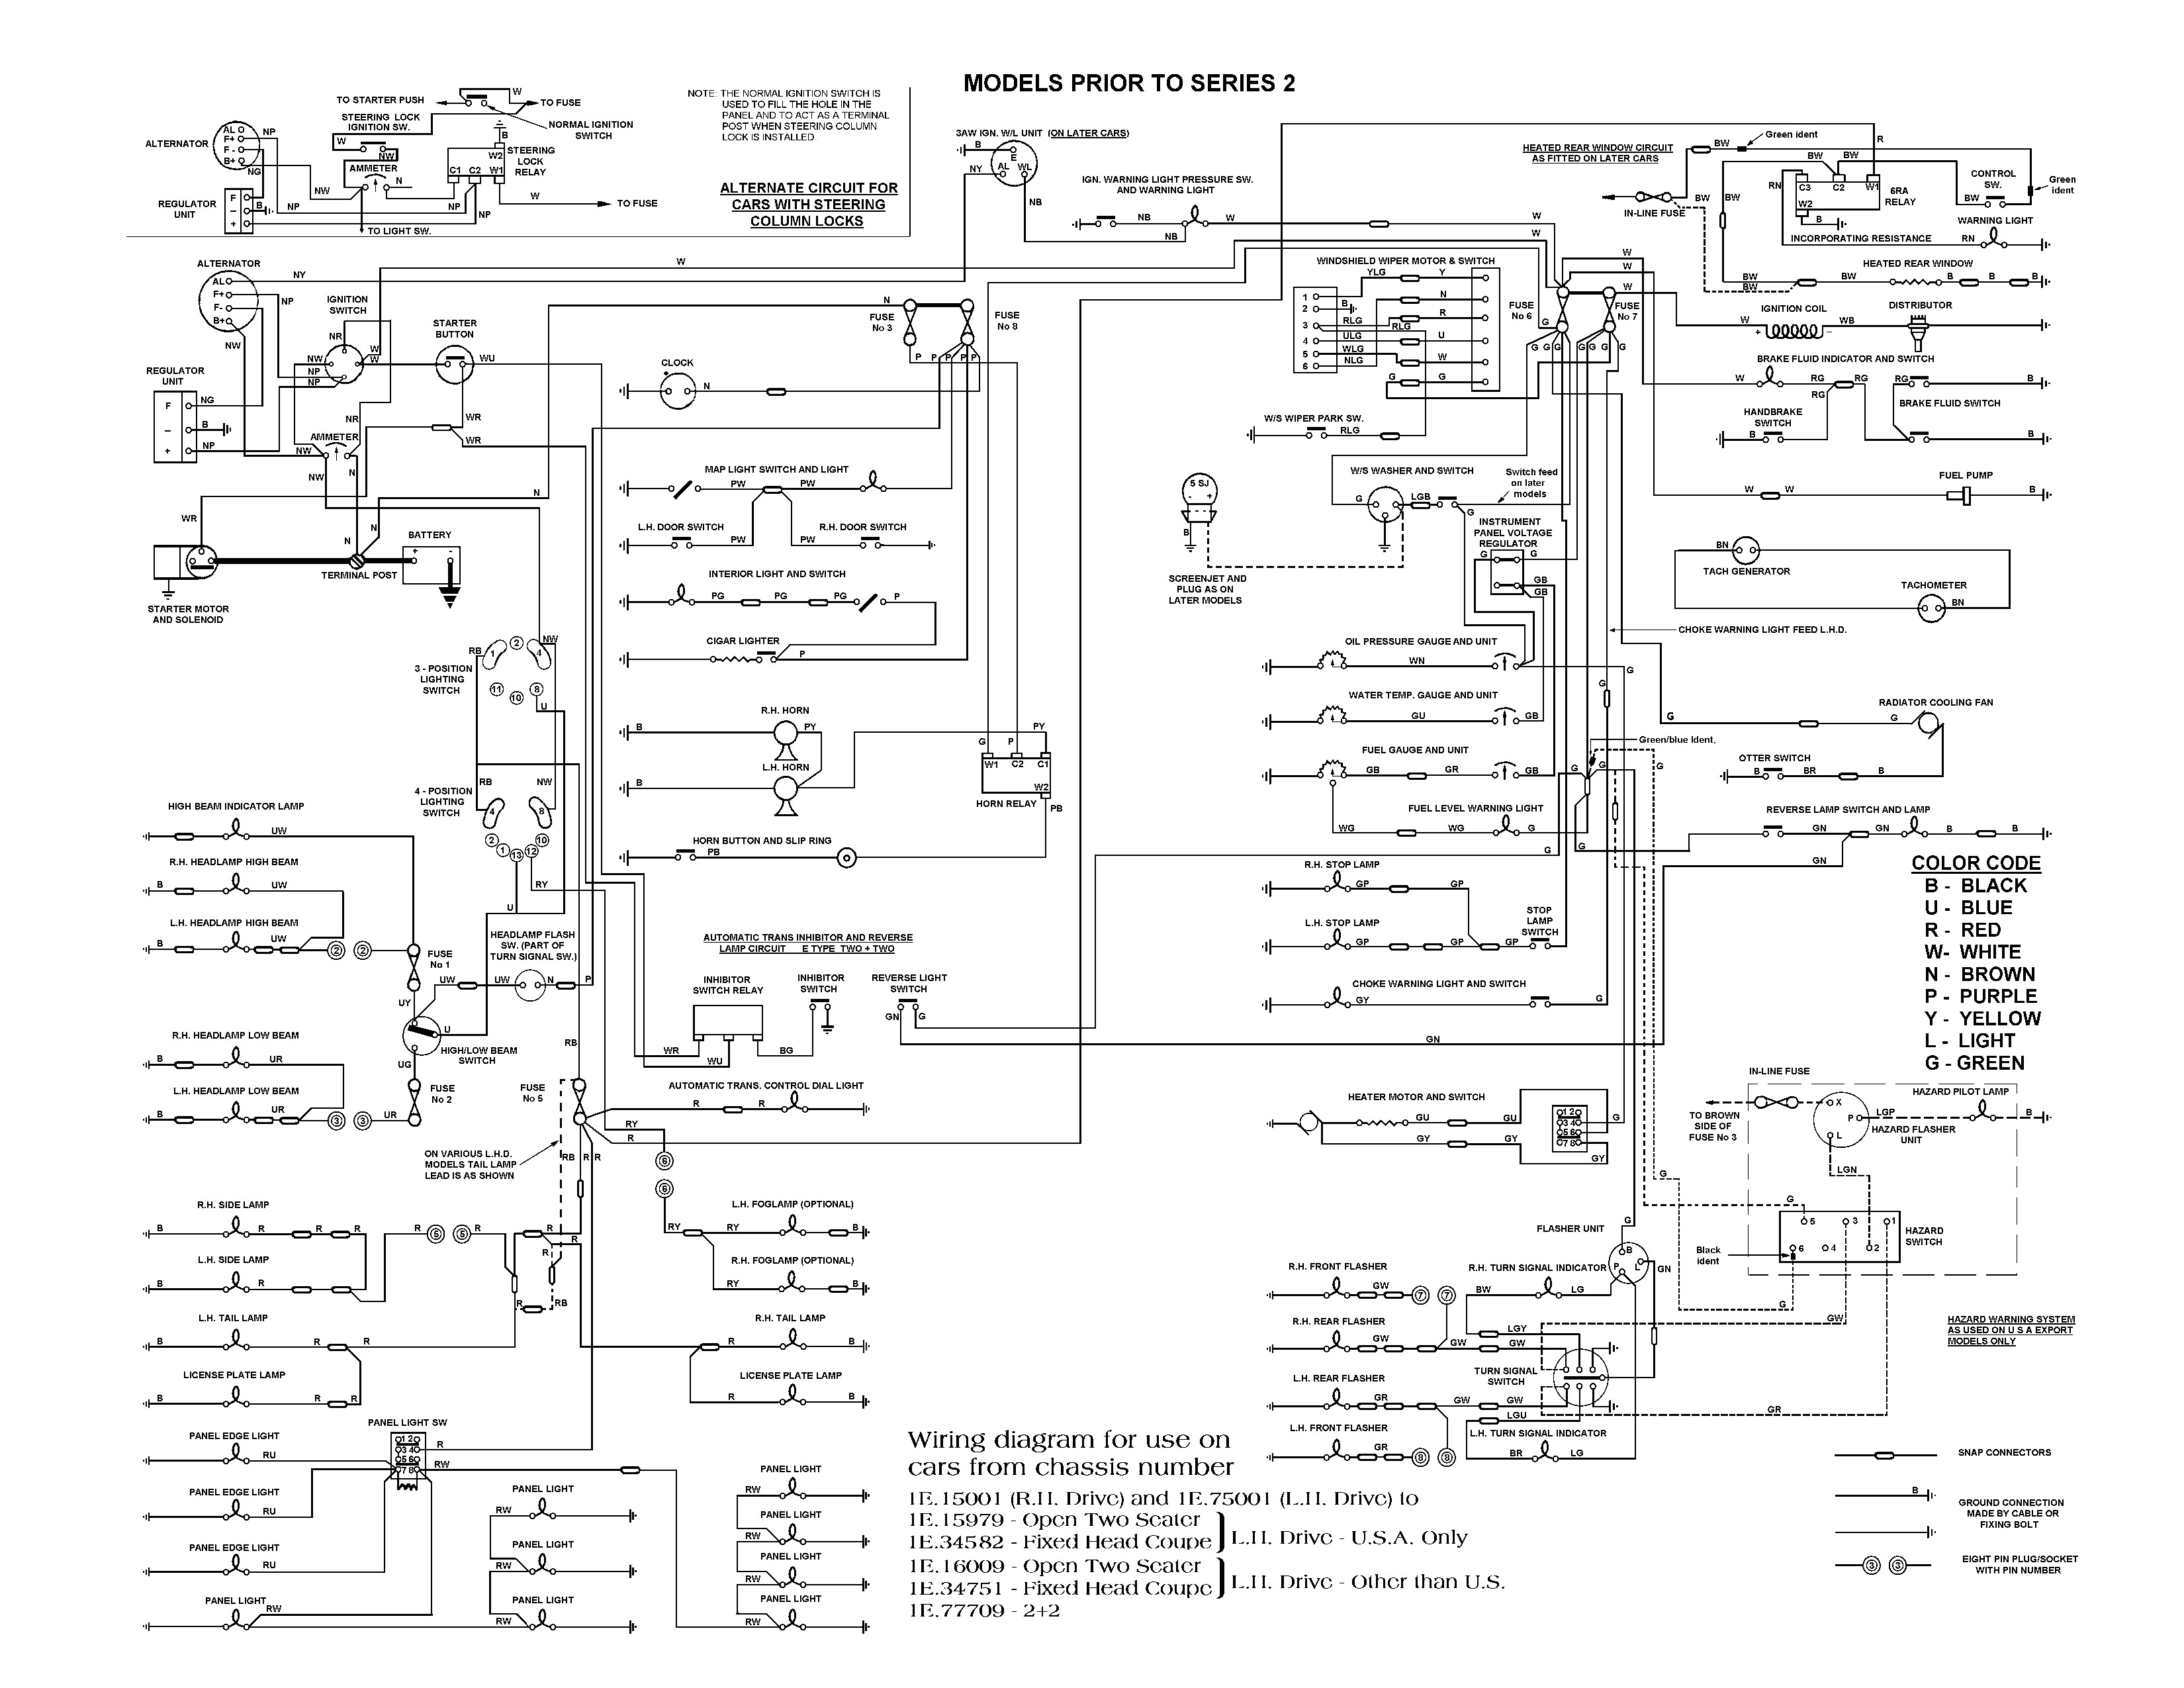 Lincoln Ls Fuse Box Lincoln Ls Dccv Fuse E A Chwbkosovo With Regard To Lincoln Ls Fuse Box Diagram additionally D Jaguar X Type V Radio Not Working moreover F likewise Jaguar X Type Main Fuse Box Diagram X as well Jaguar Xk Interior Fuse Box Diagram. on 2005 jaguar s type fuse box diagram